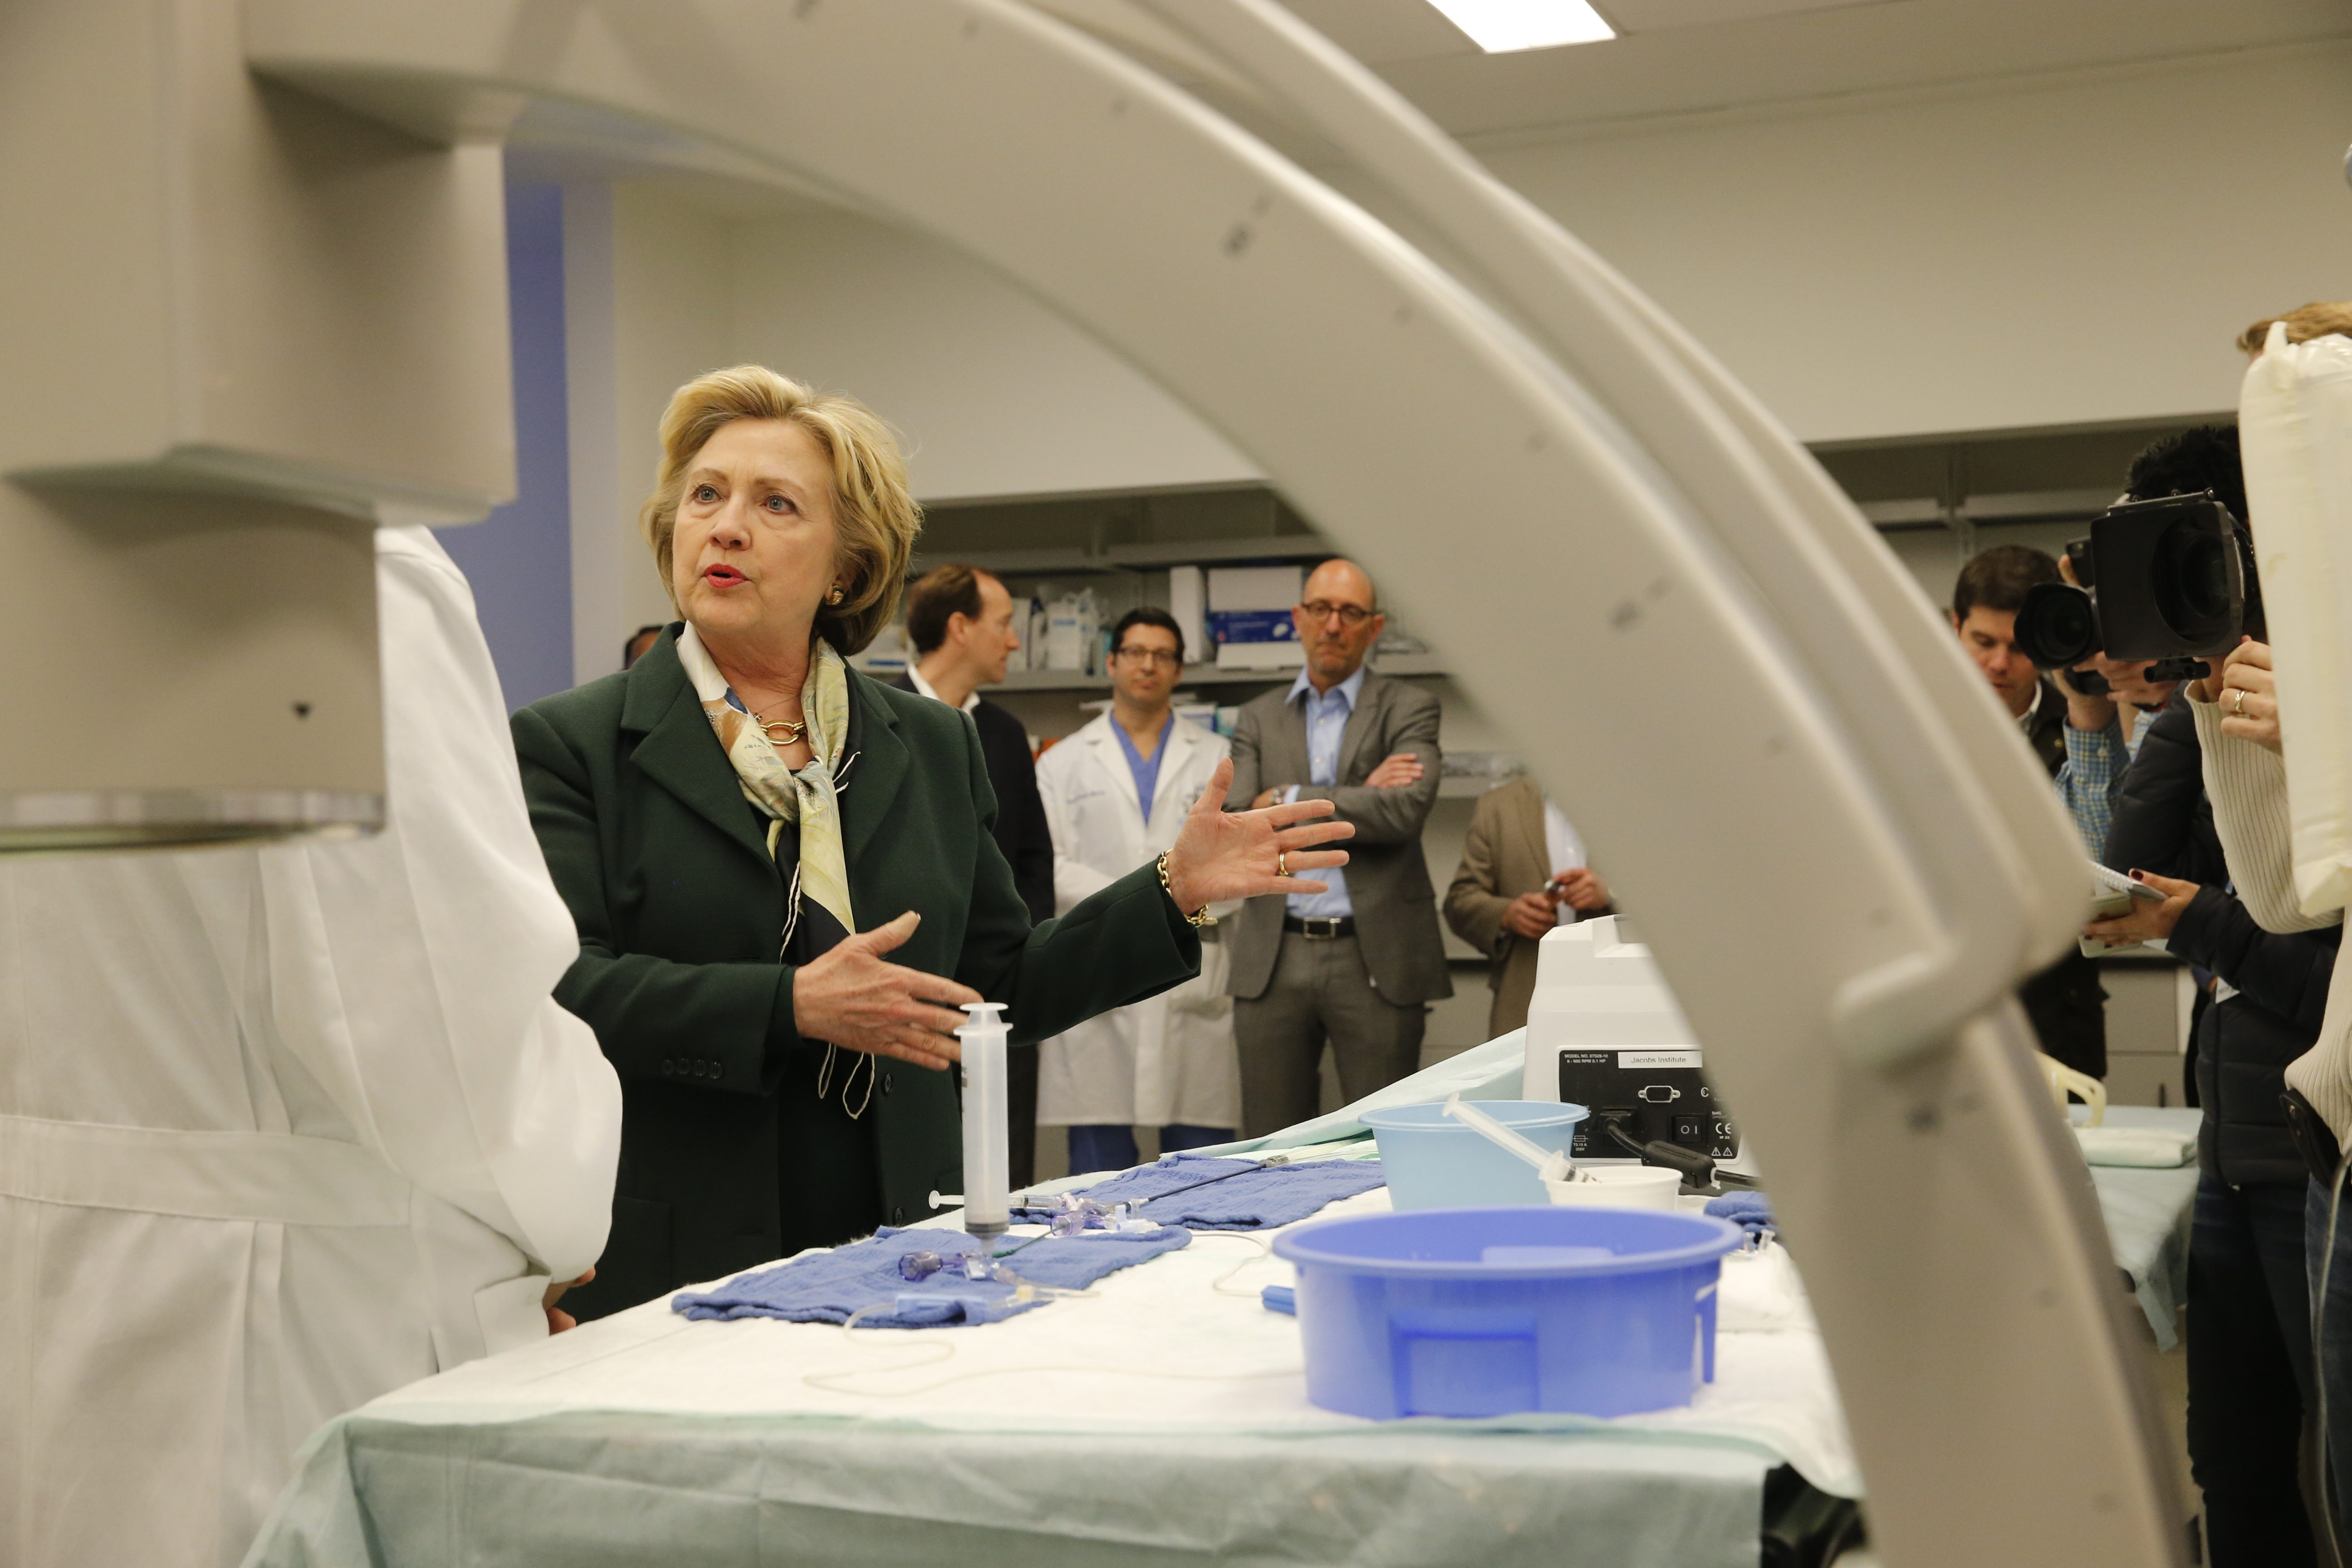 Presidential candidate Hillary Clinton tours the Jacobs Institute during a campaign stop in Buffalo, N.Y. on Friday, April 8, 2016.  (Derek Gee/Buffalo News)